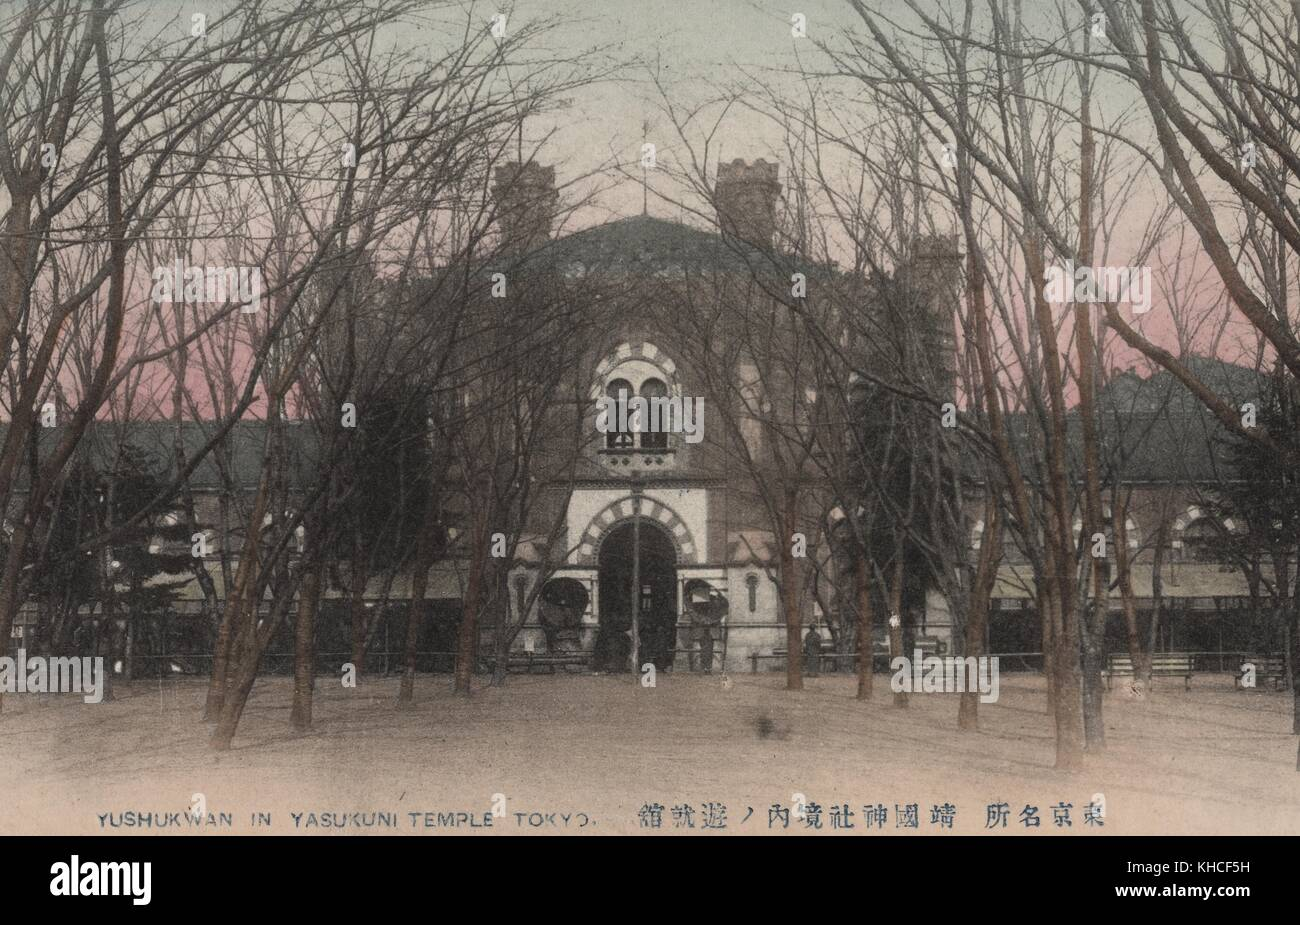 An old postcard picture of the front view of Yushukwan, museum of armament, which preserve and display Meiji Restoration - Stock Image